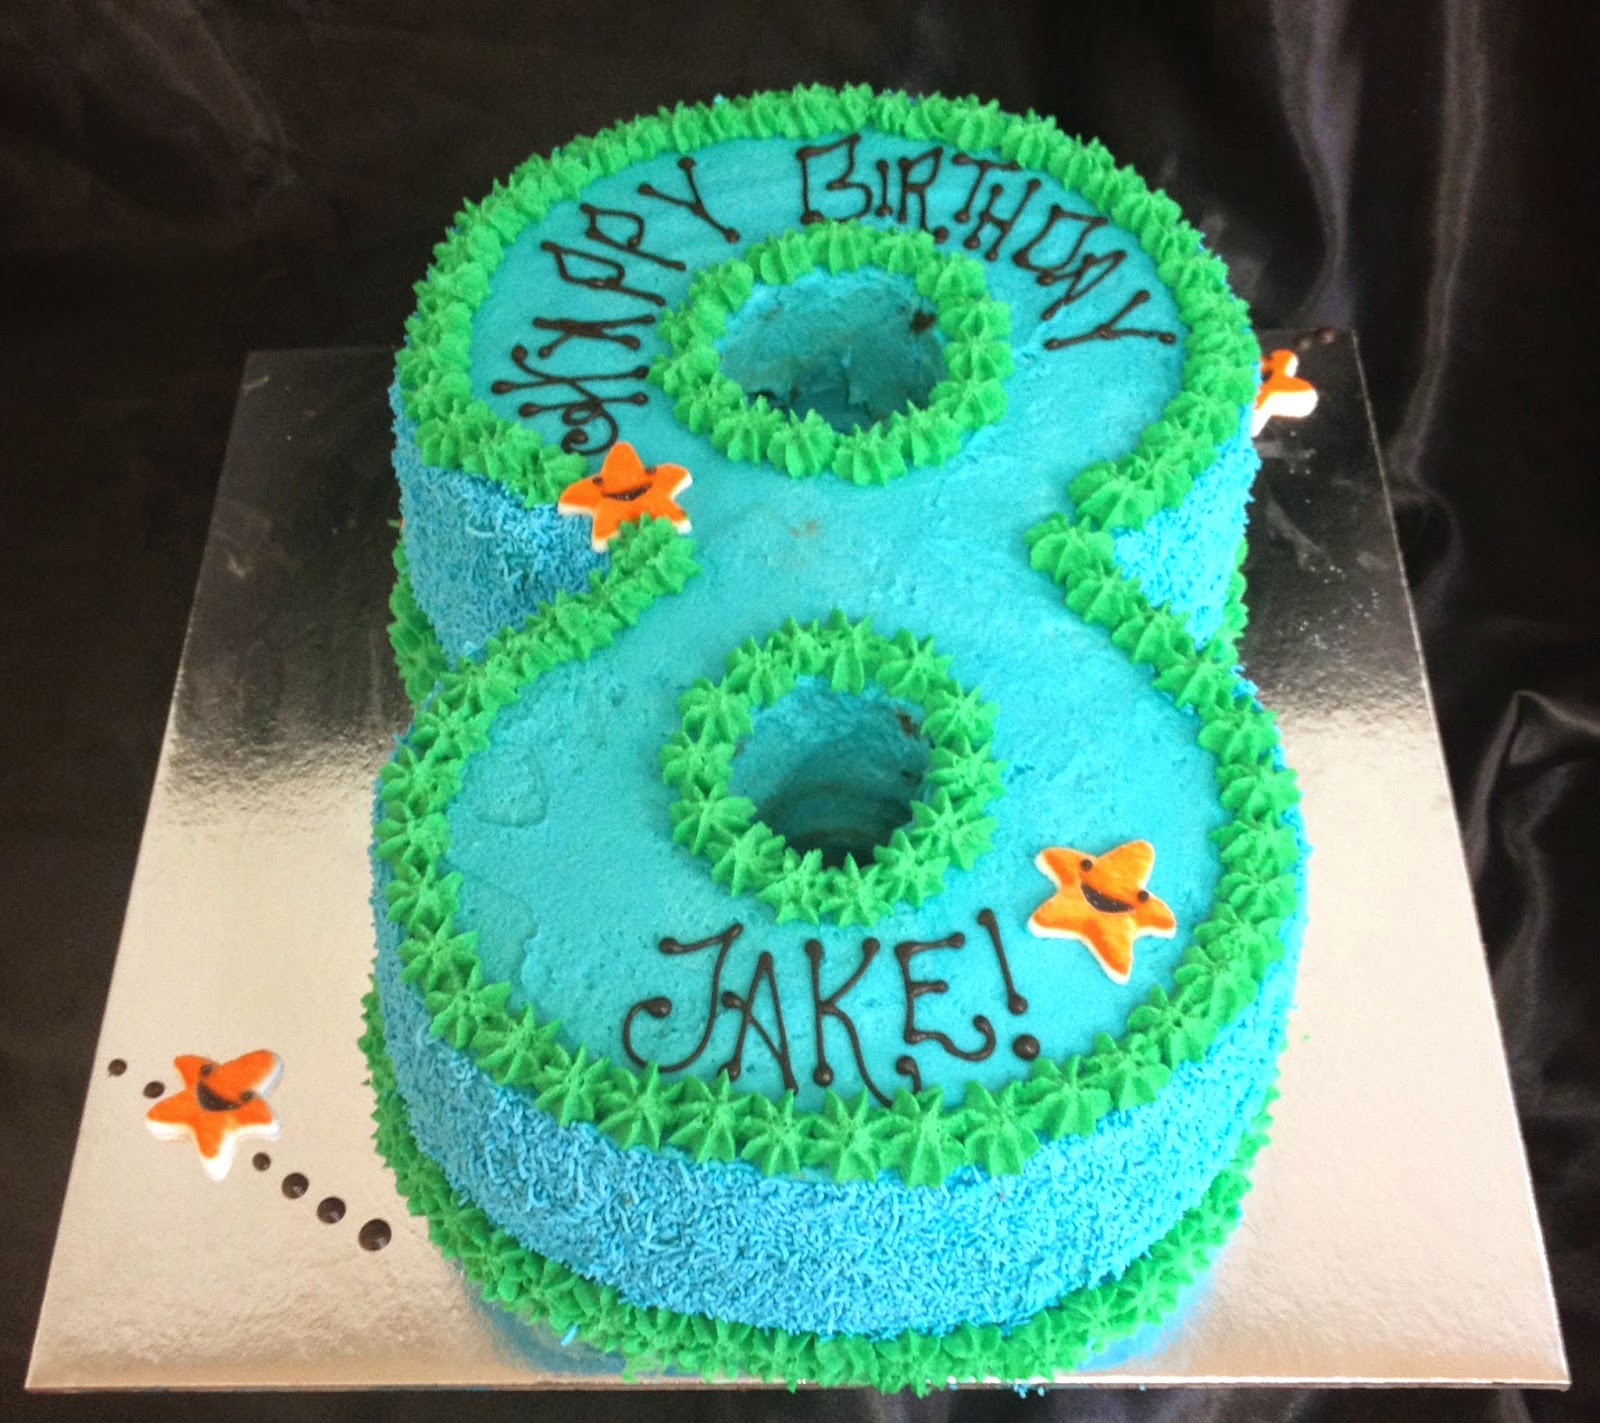 #8 cake, Blue cream, happy 8th birthday